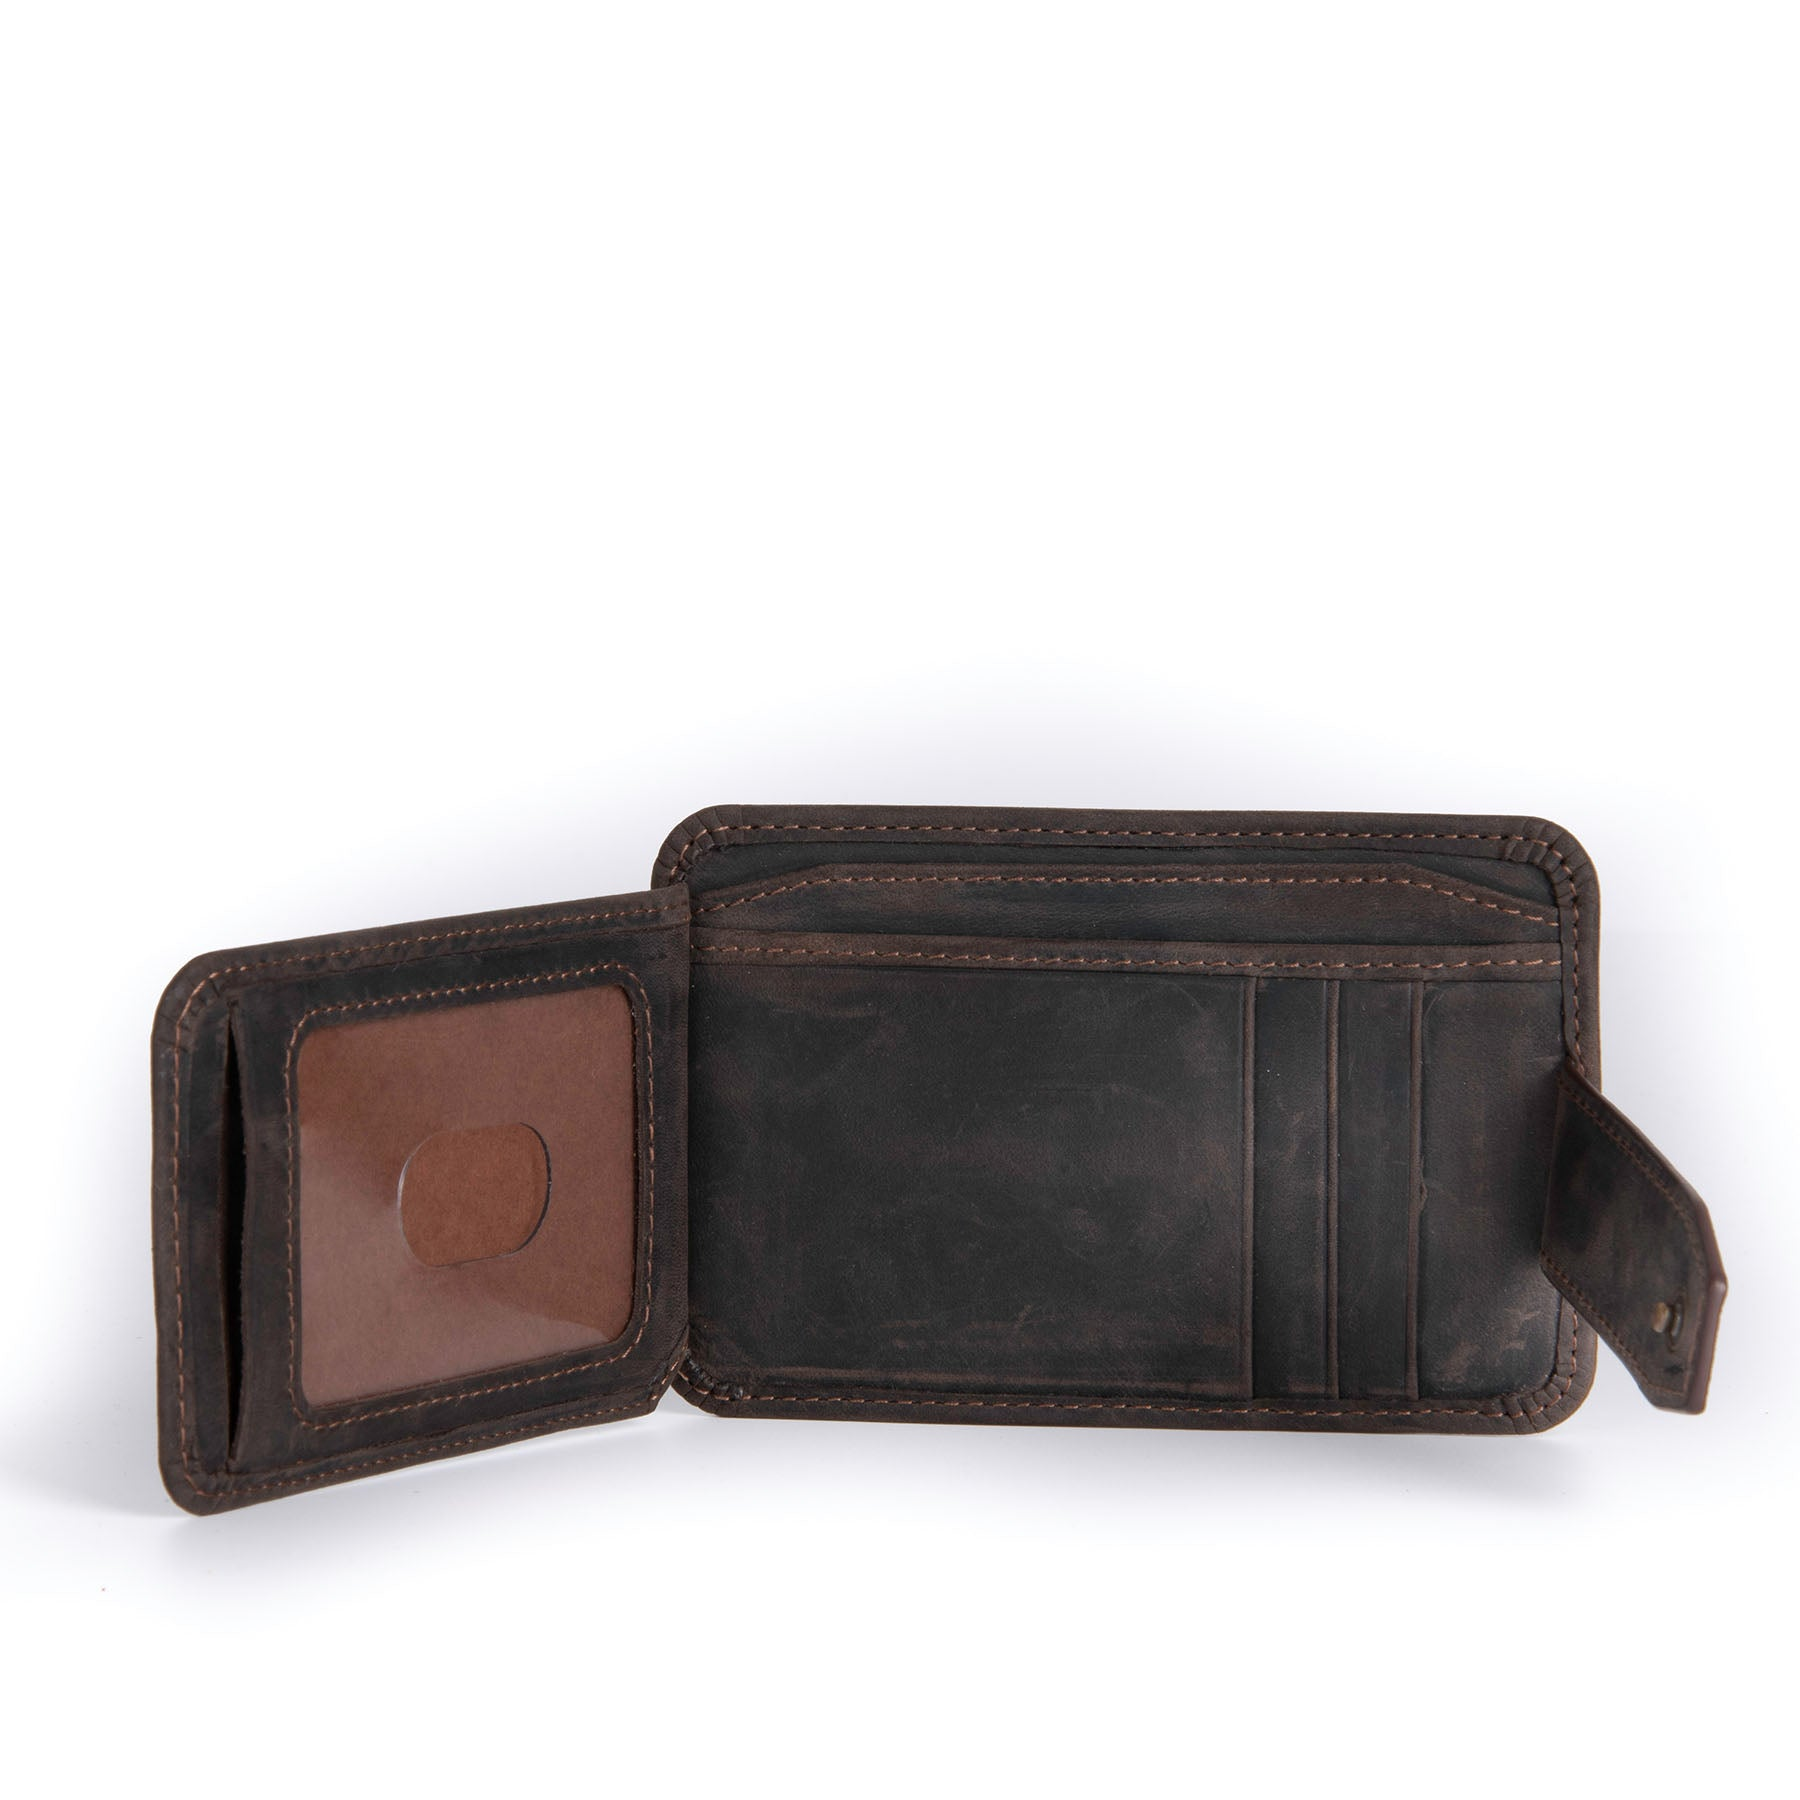 Canyon Leather Wallet - Chestnut 5